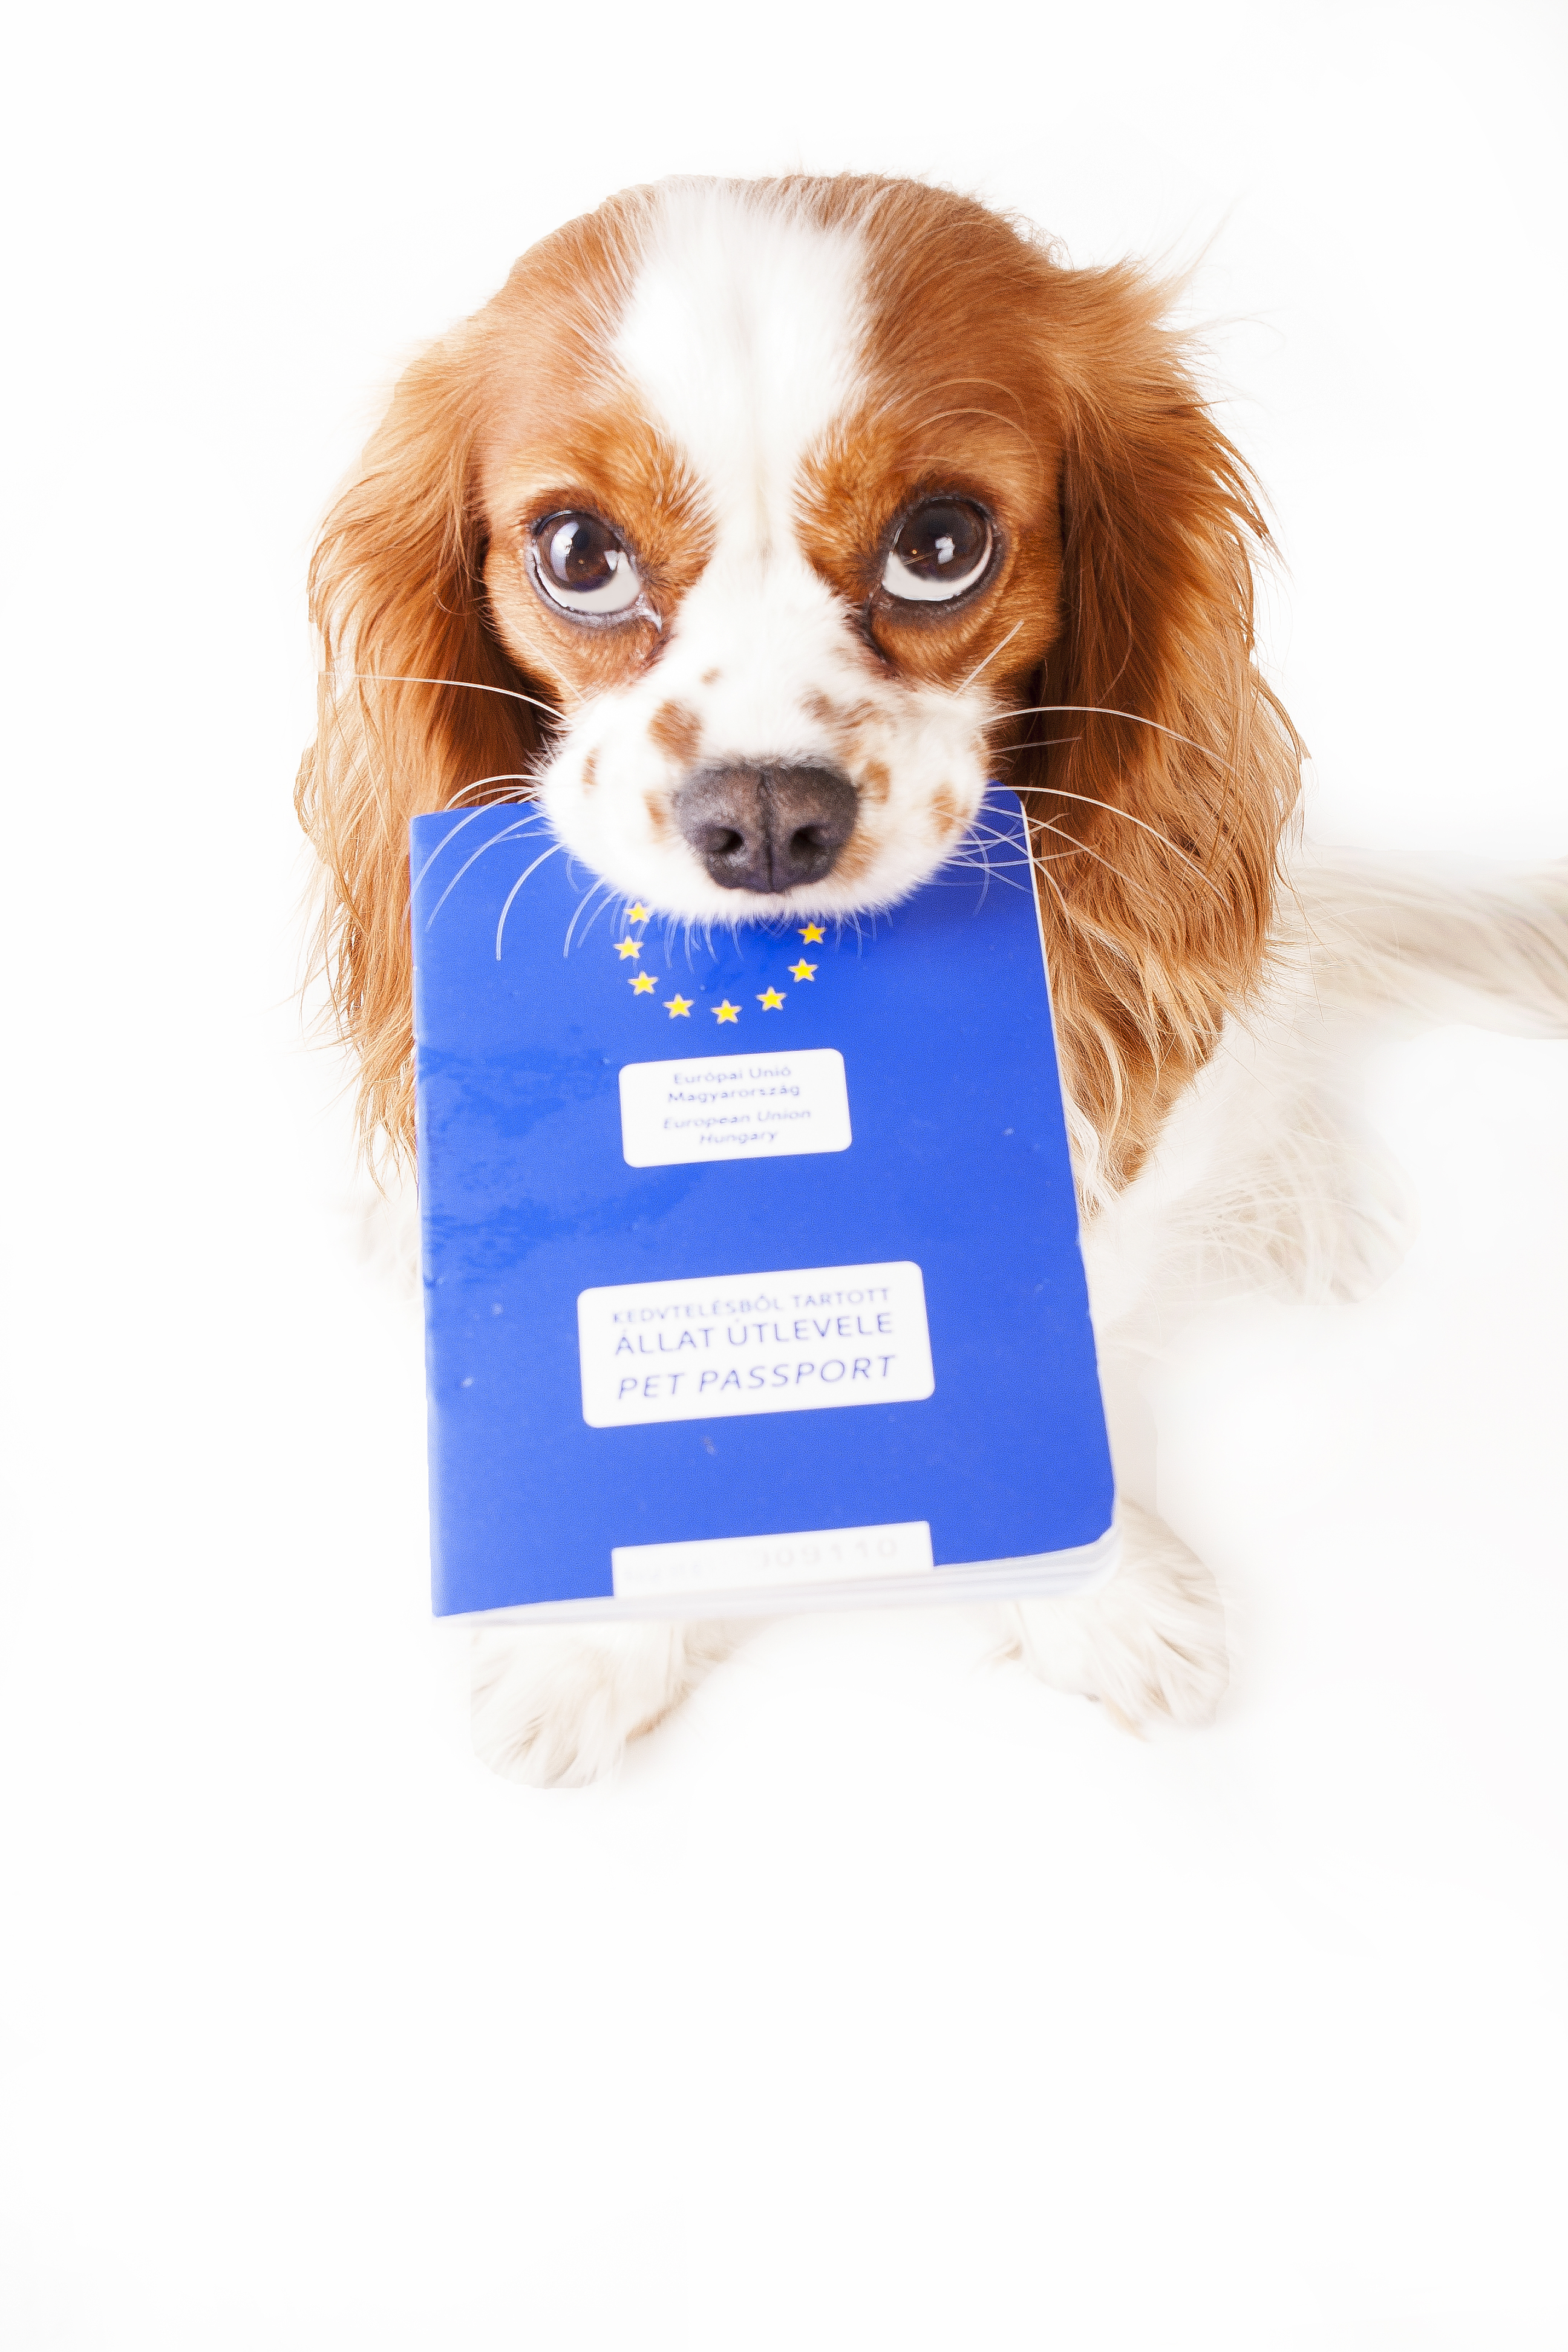 dog holding passport in mouth